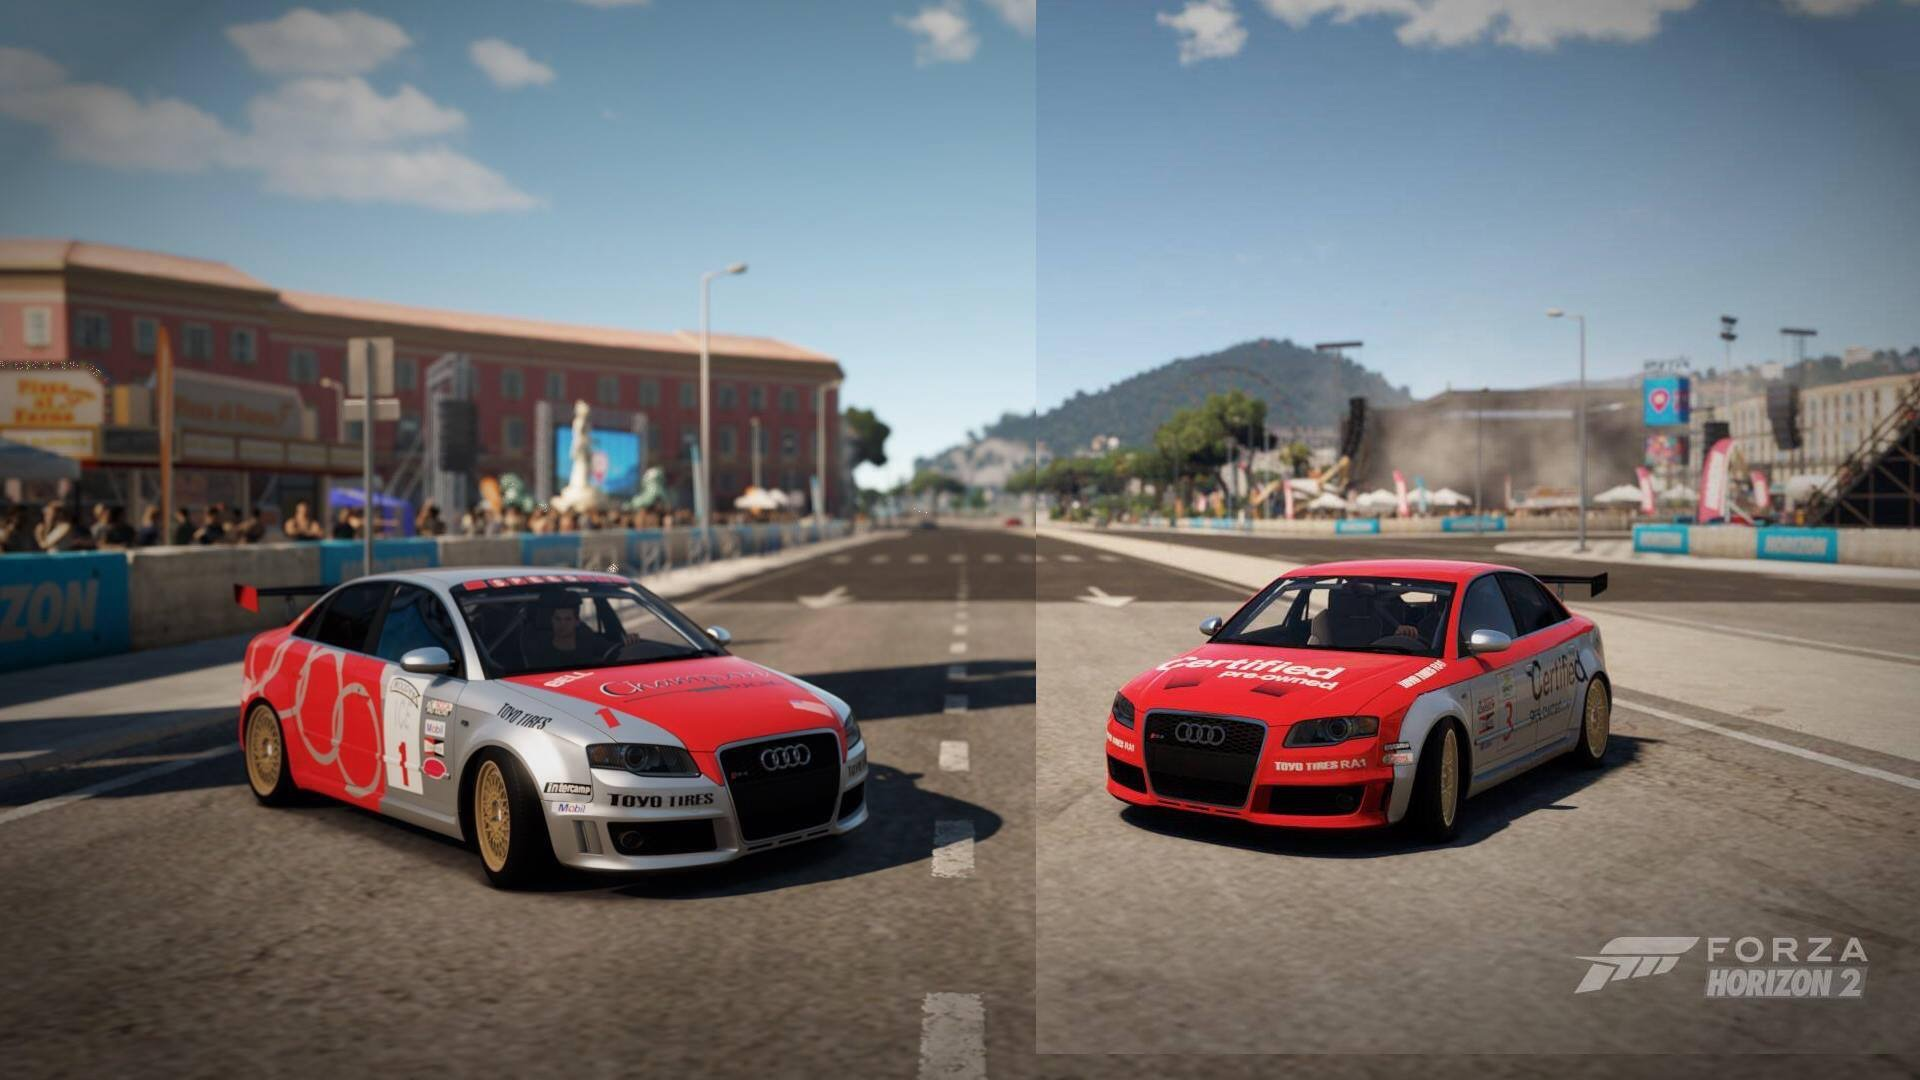 ... Audi RS4. On the right, (2002) Audi S4 #3 Certified Pre-Owned Champion